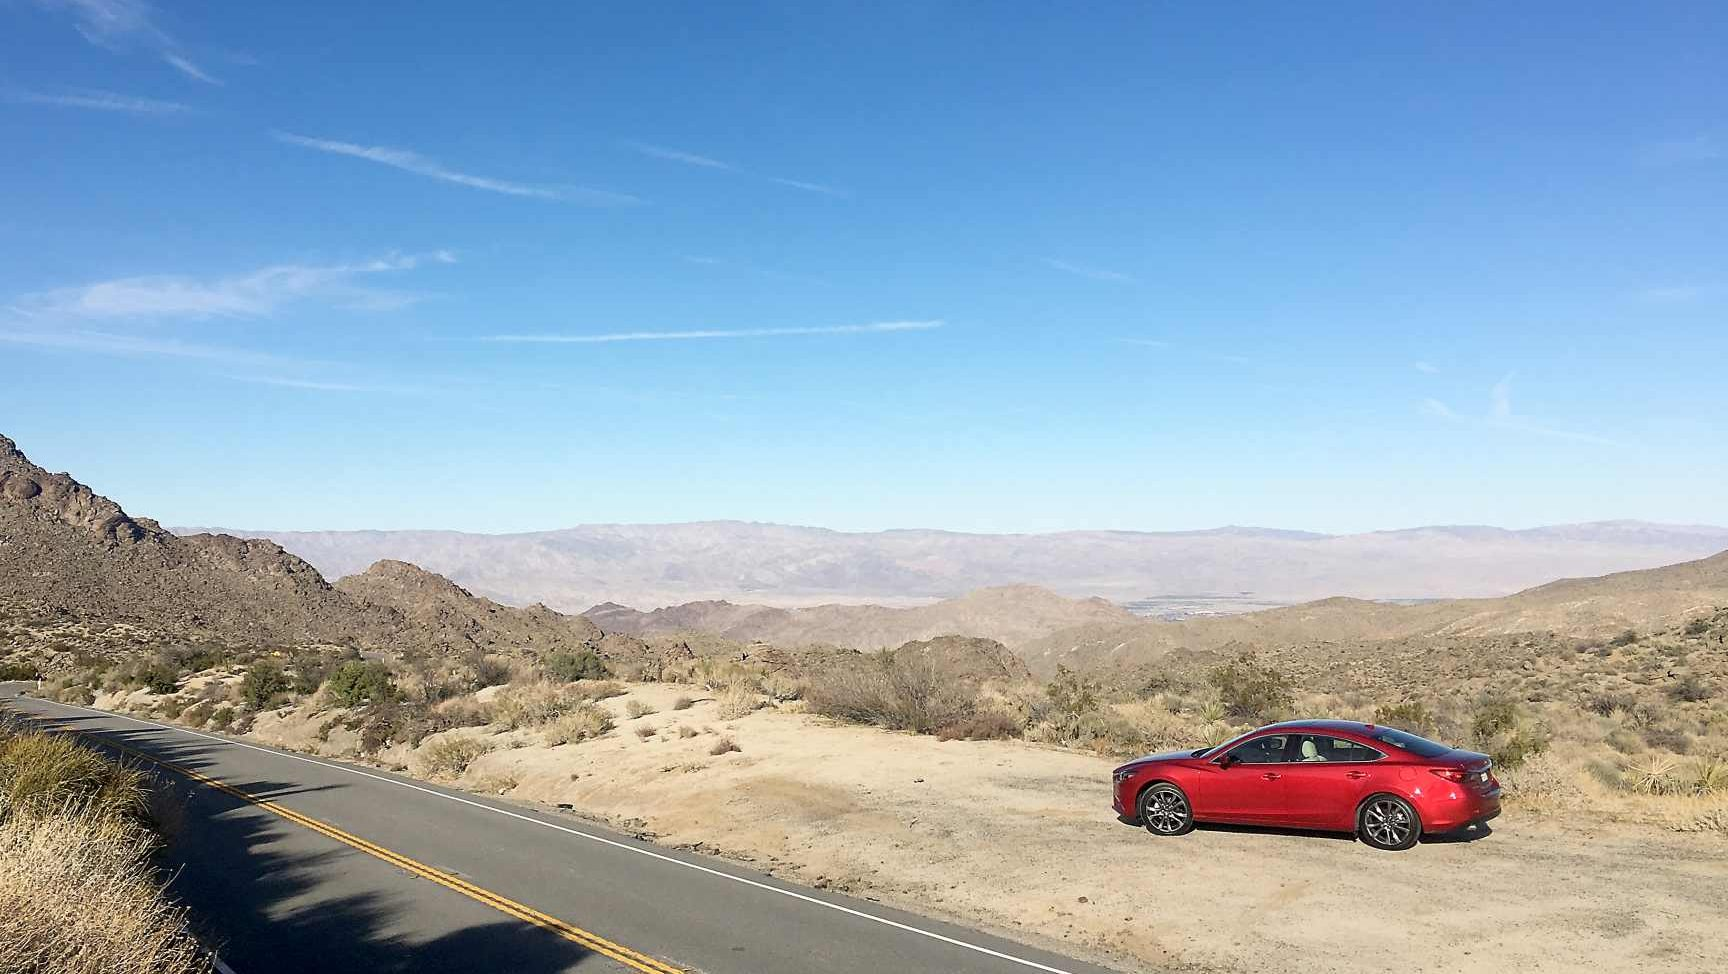 Image for Ortega Highway i Joshua Tree